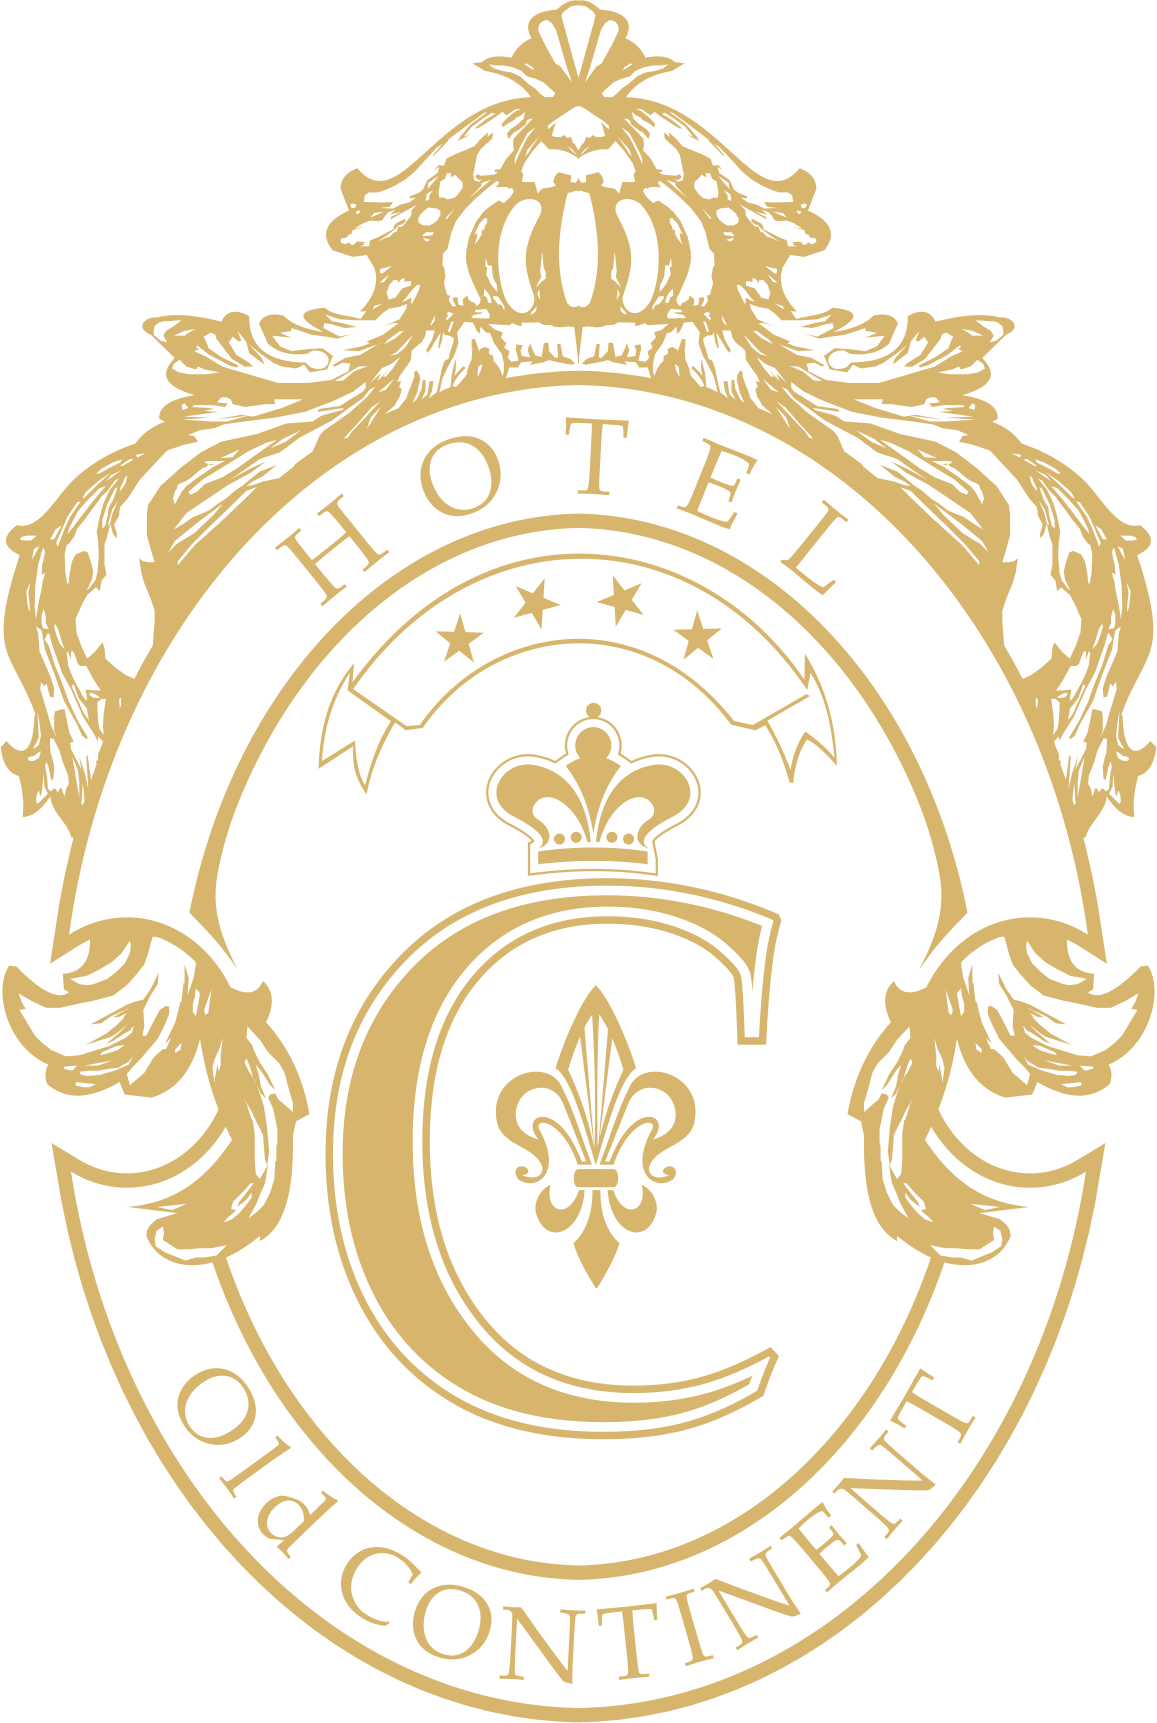 Hotel Old CONTINENT logo